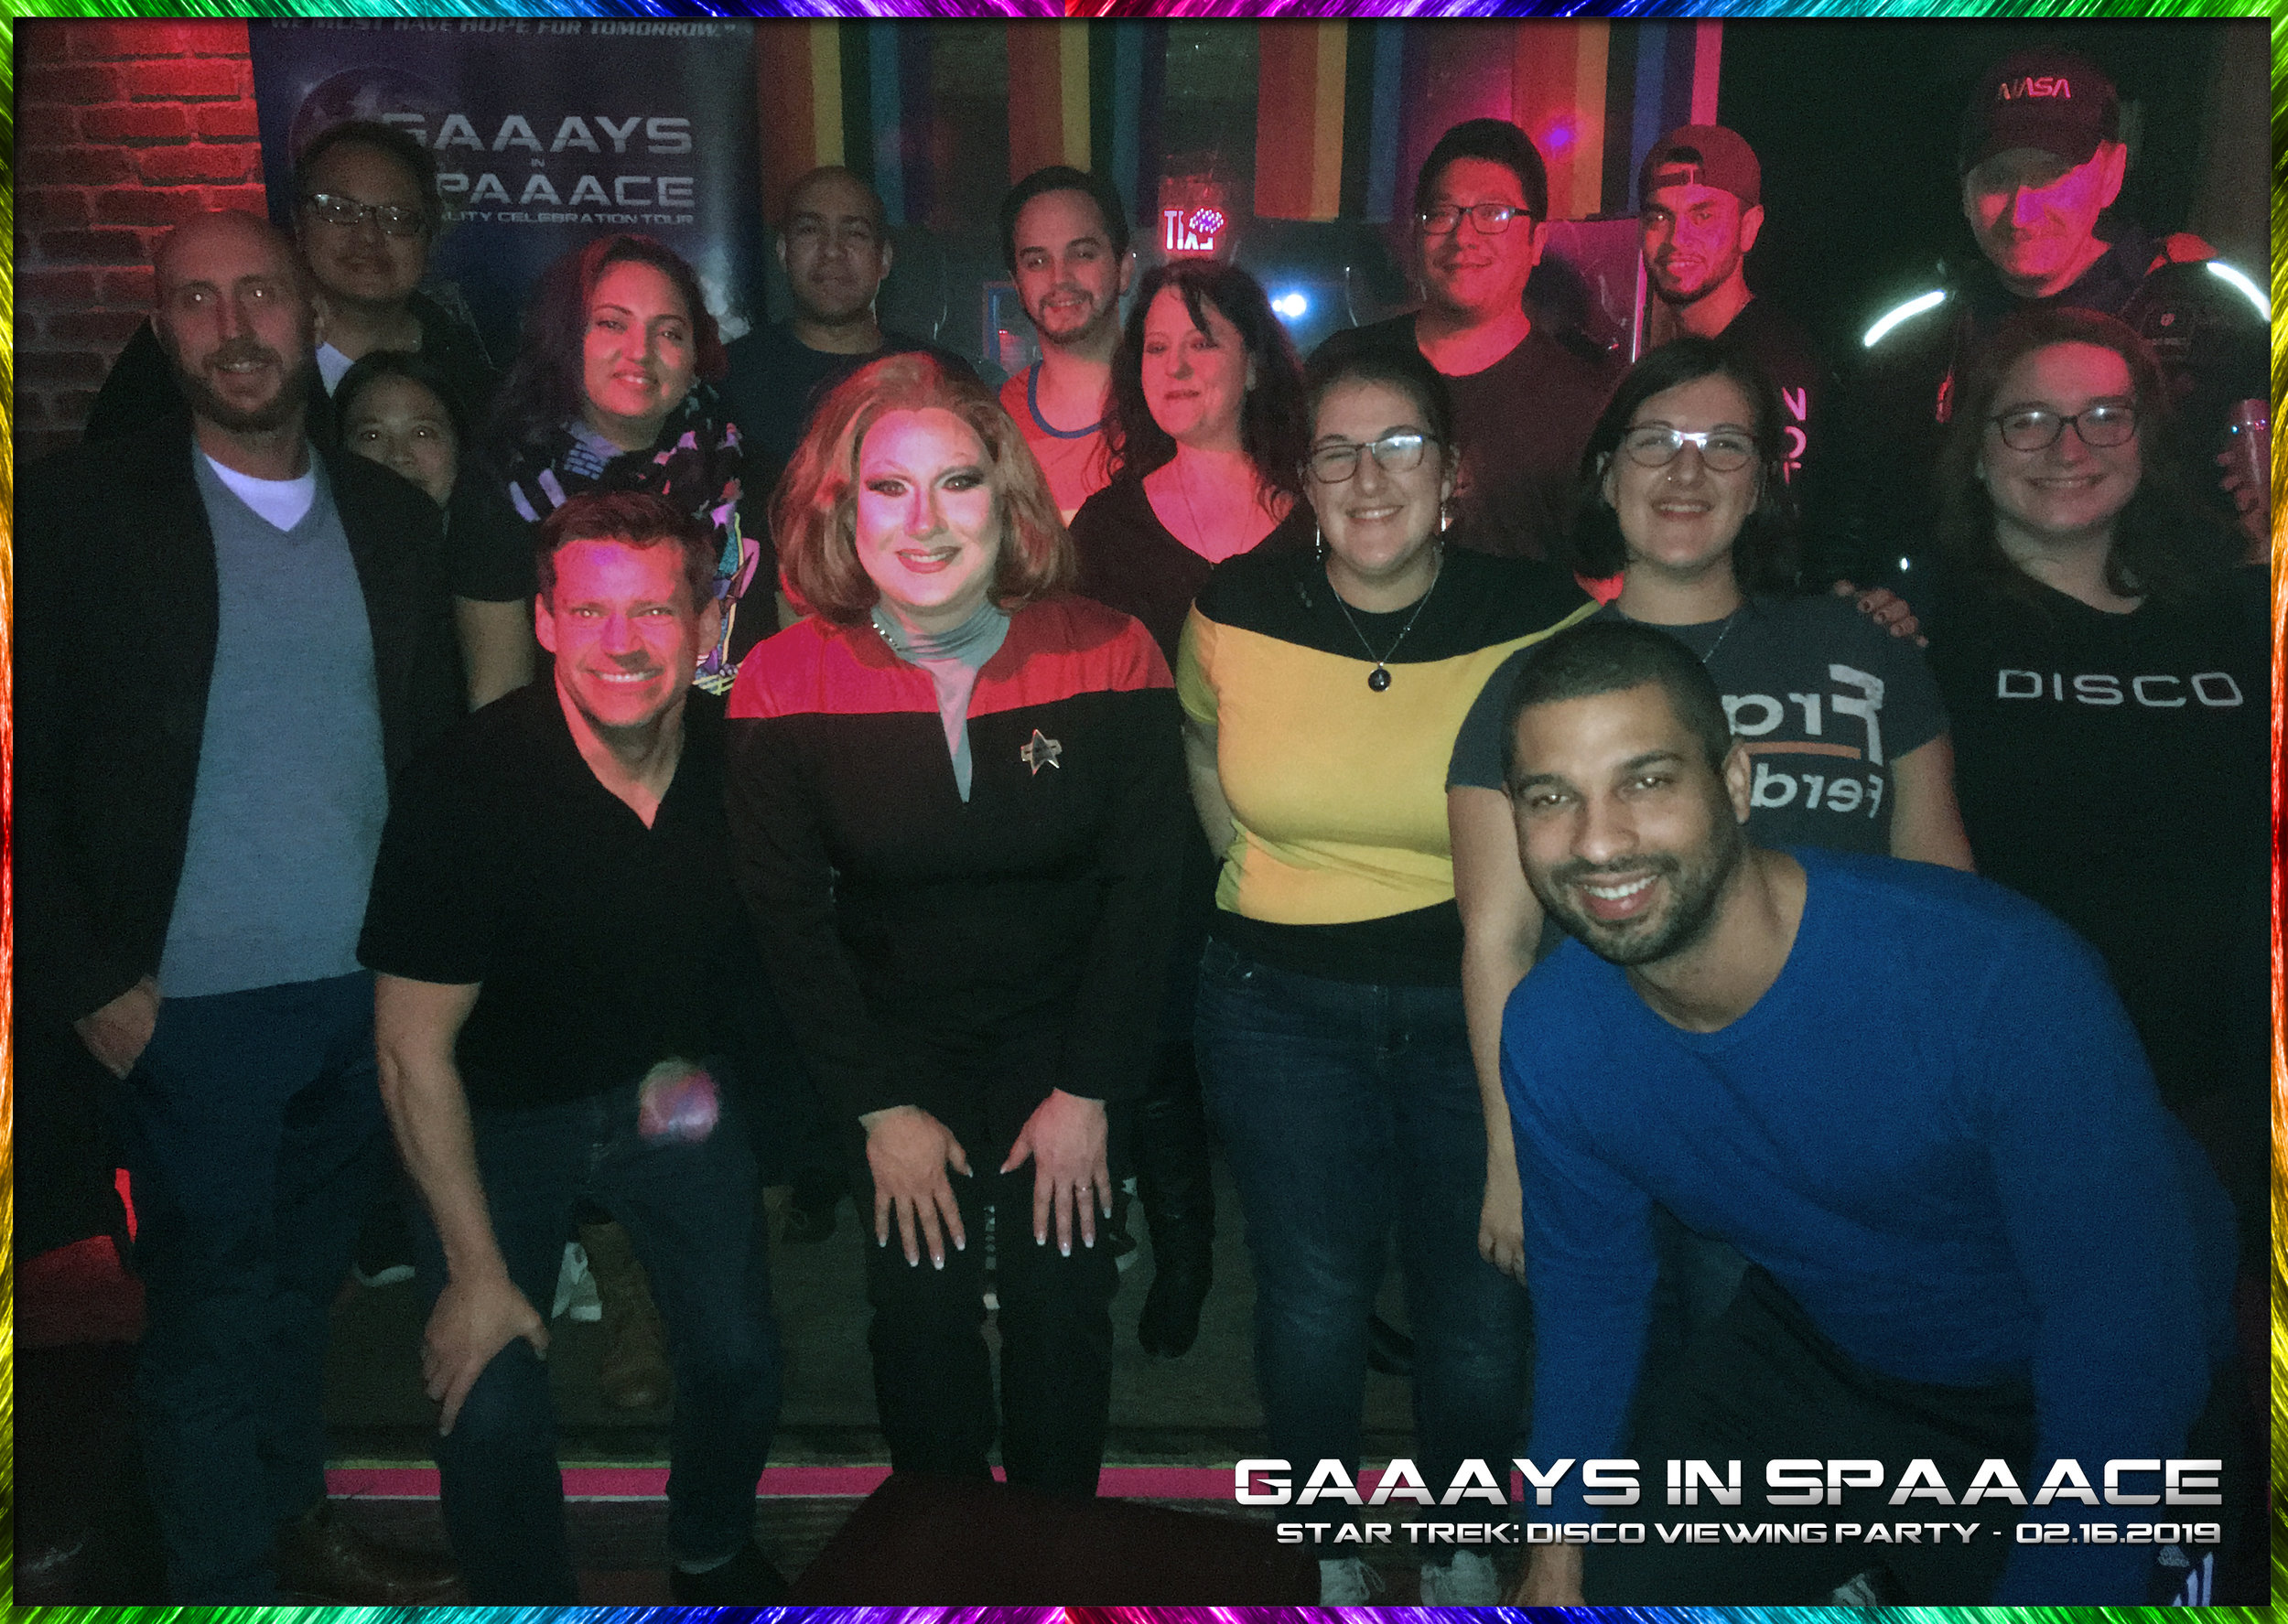 1-02-16-19-GIS-DISCO-VIEWING-PARTY-GROUP-1.jpg